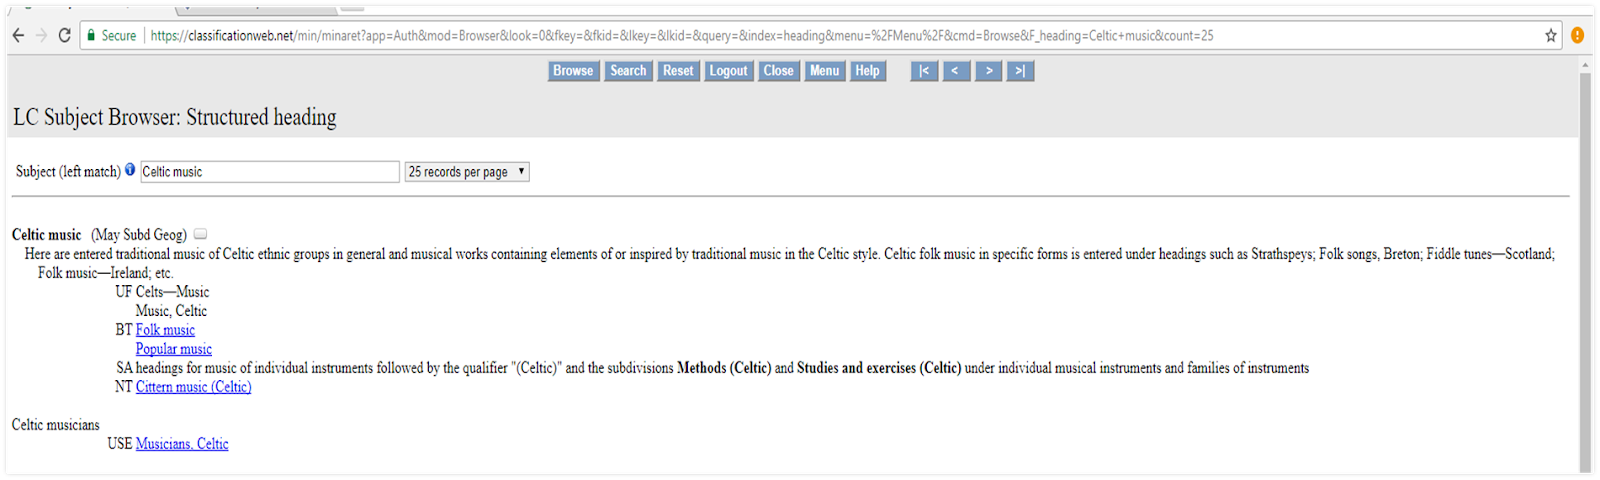 Figure 1b. Celtic Music is the approved LCSH.  Source: www.classificationweb.net.